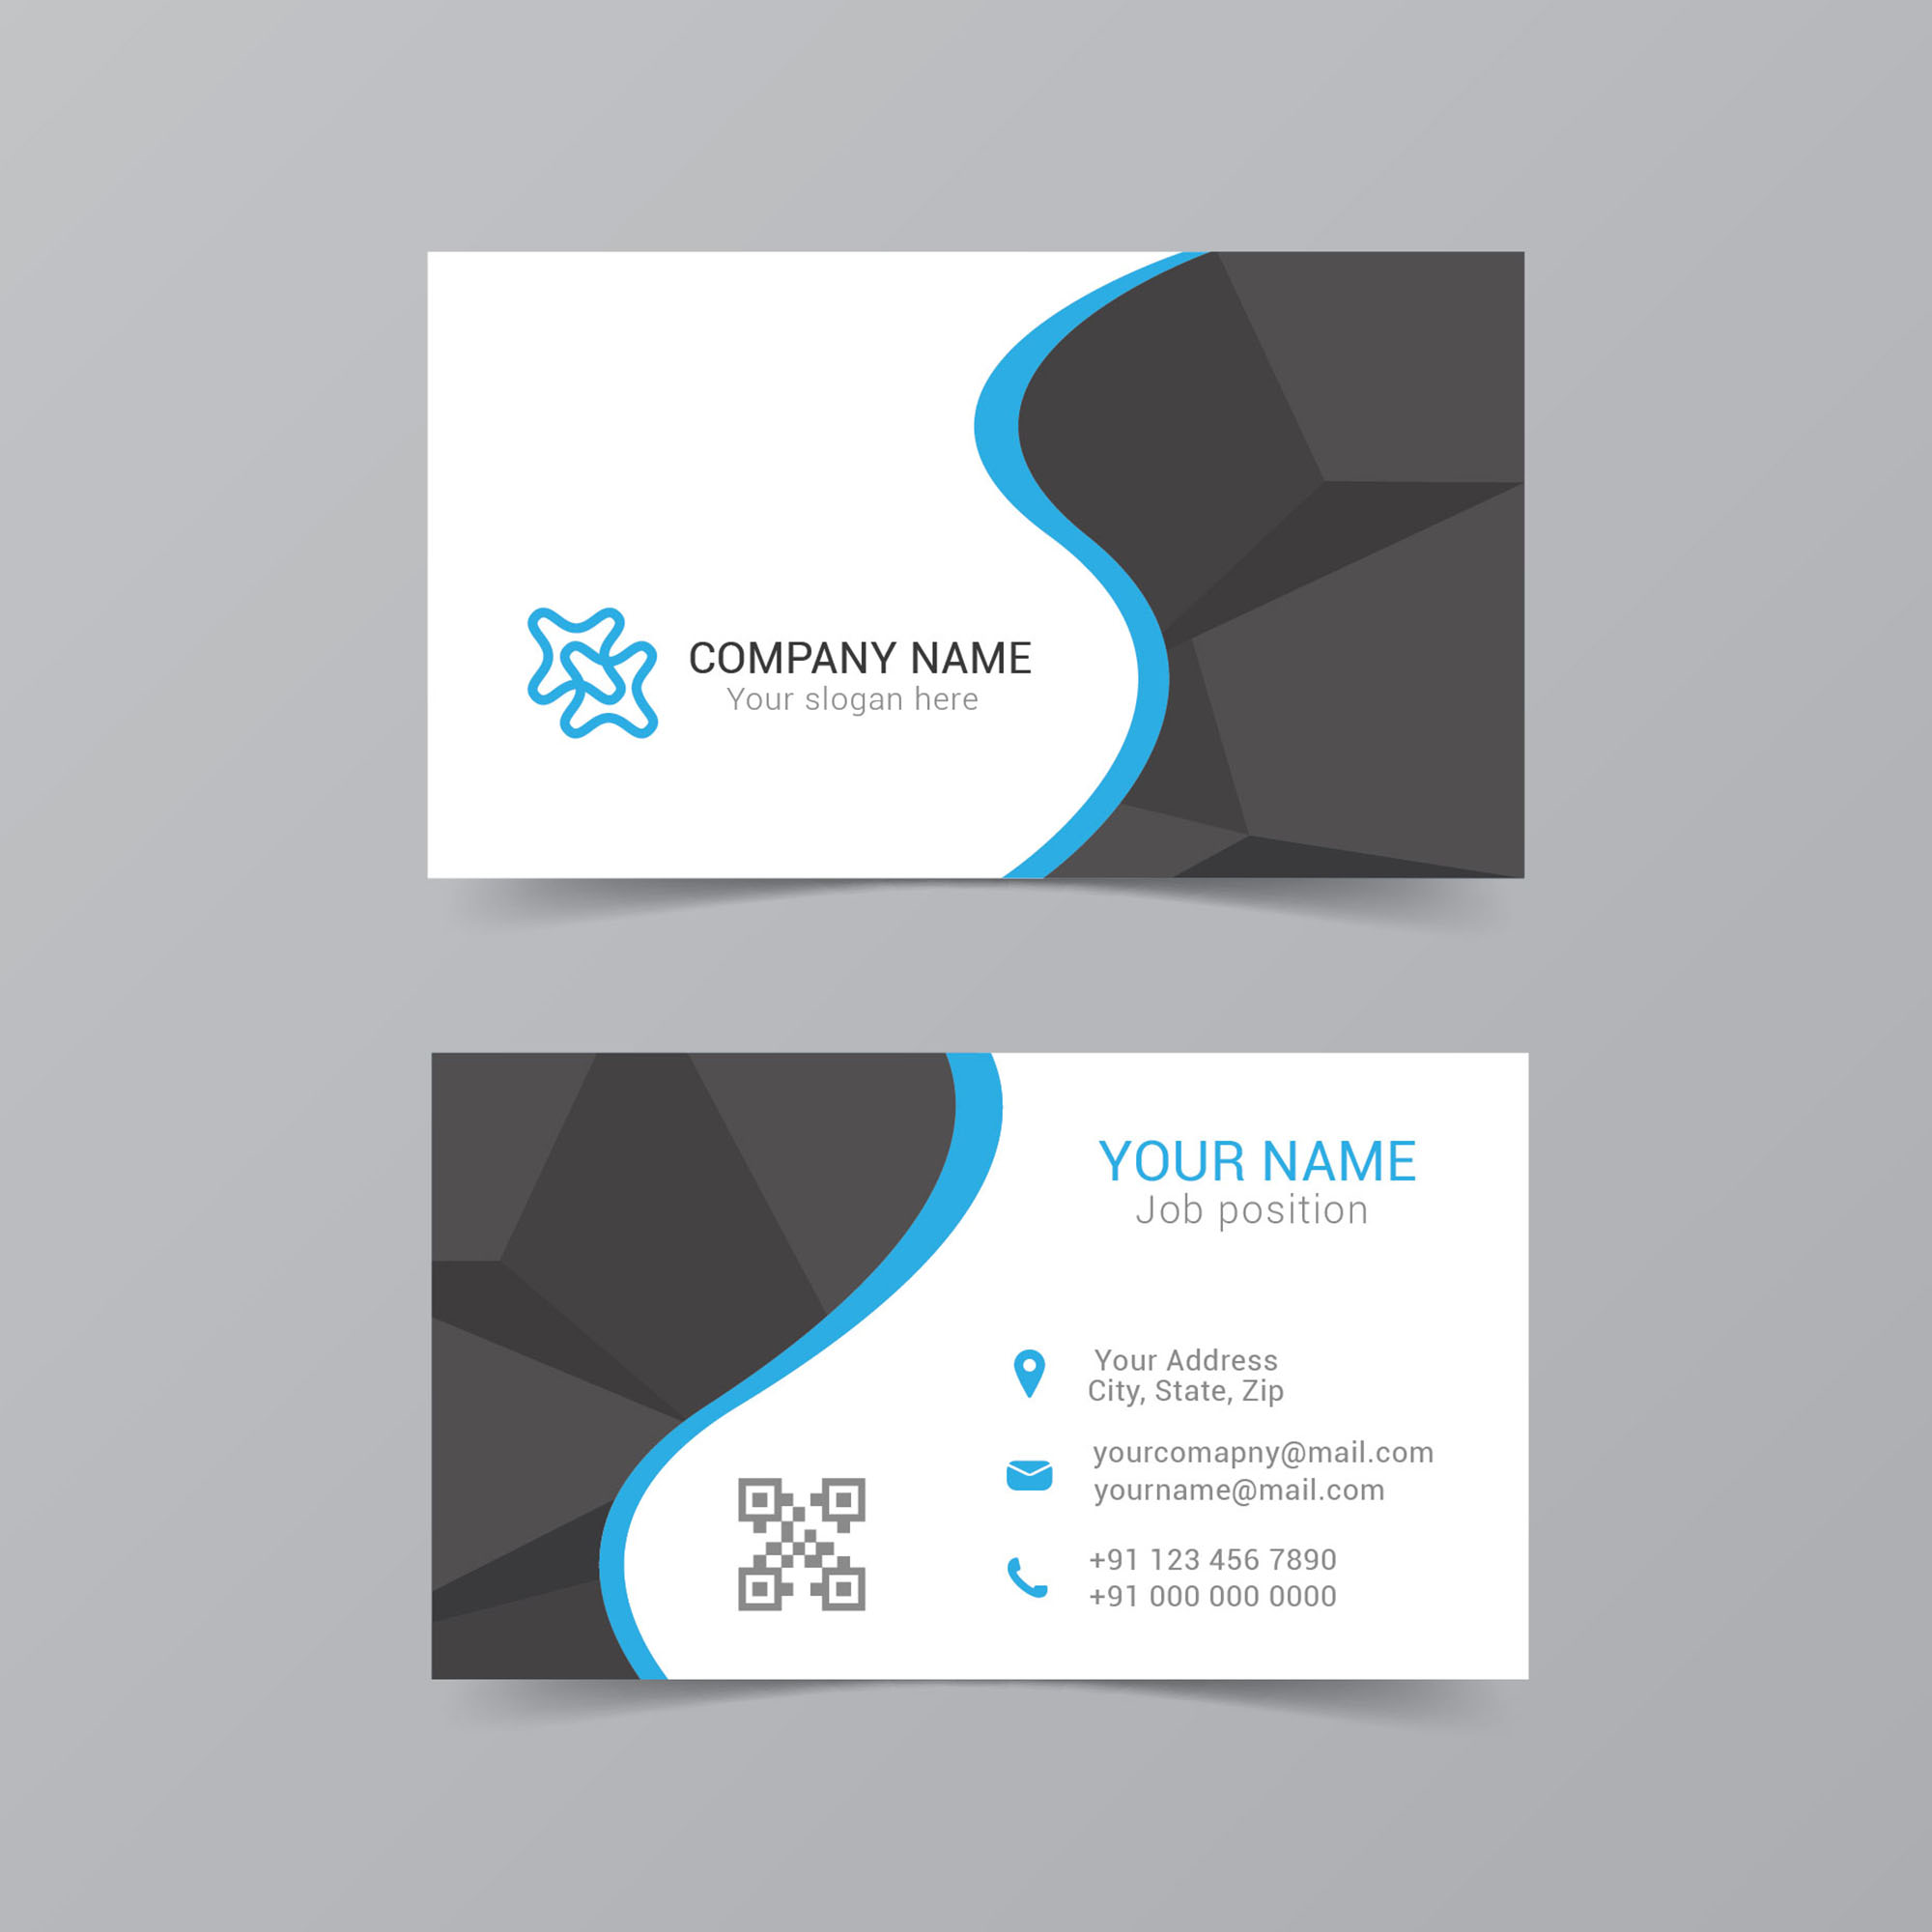 Business visiting card design free download wisxi business card design visiting card clean simple colourmoves